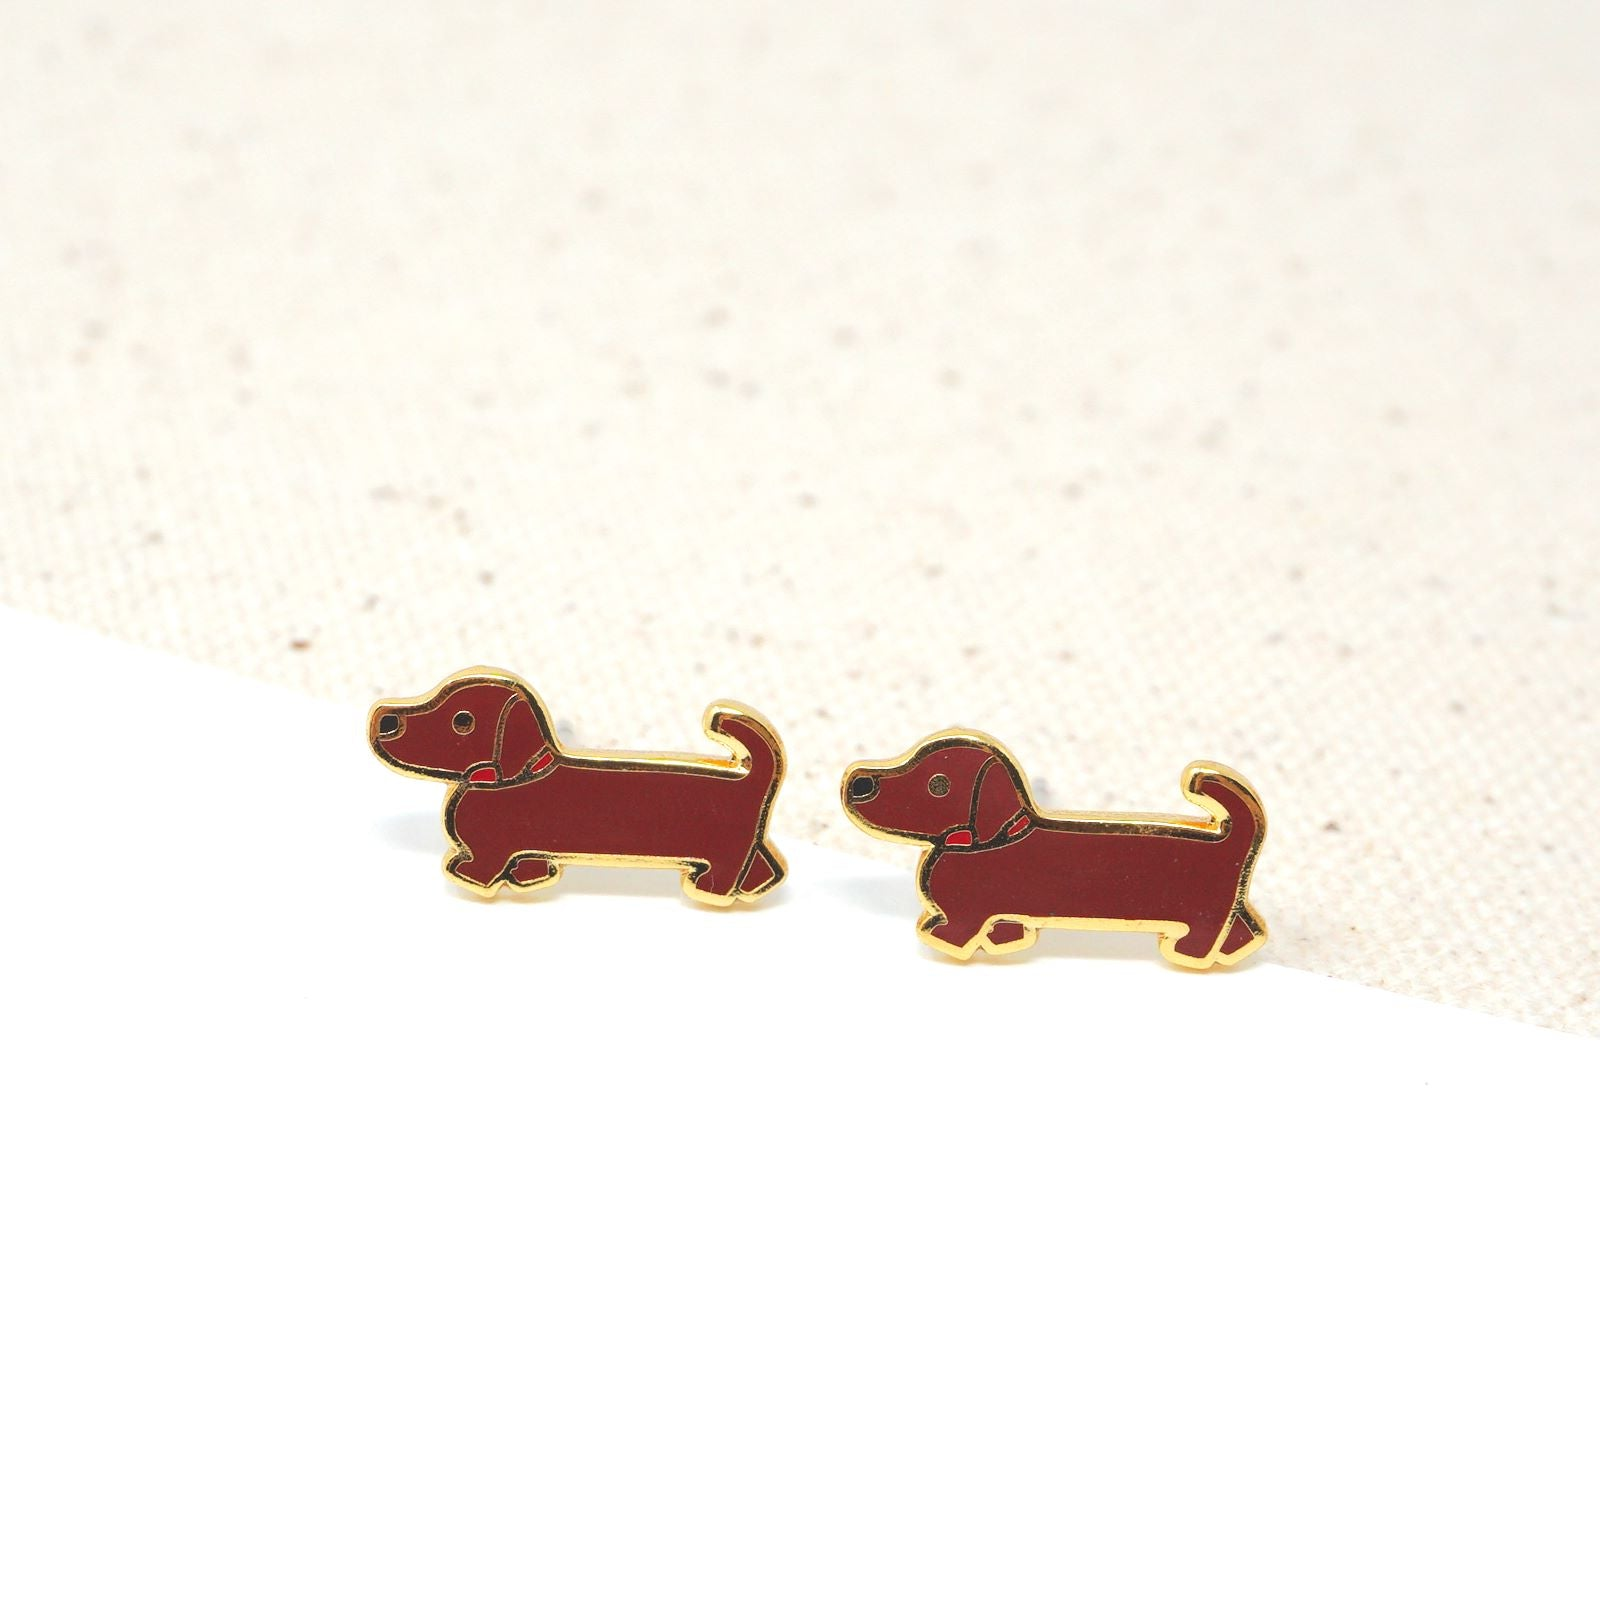 Brown Doxie (Dachshund) Enamel Stud Earrings